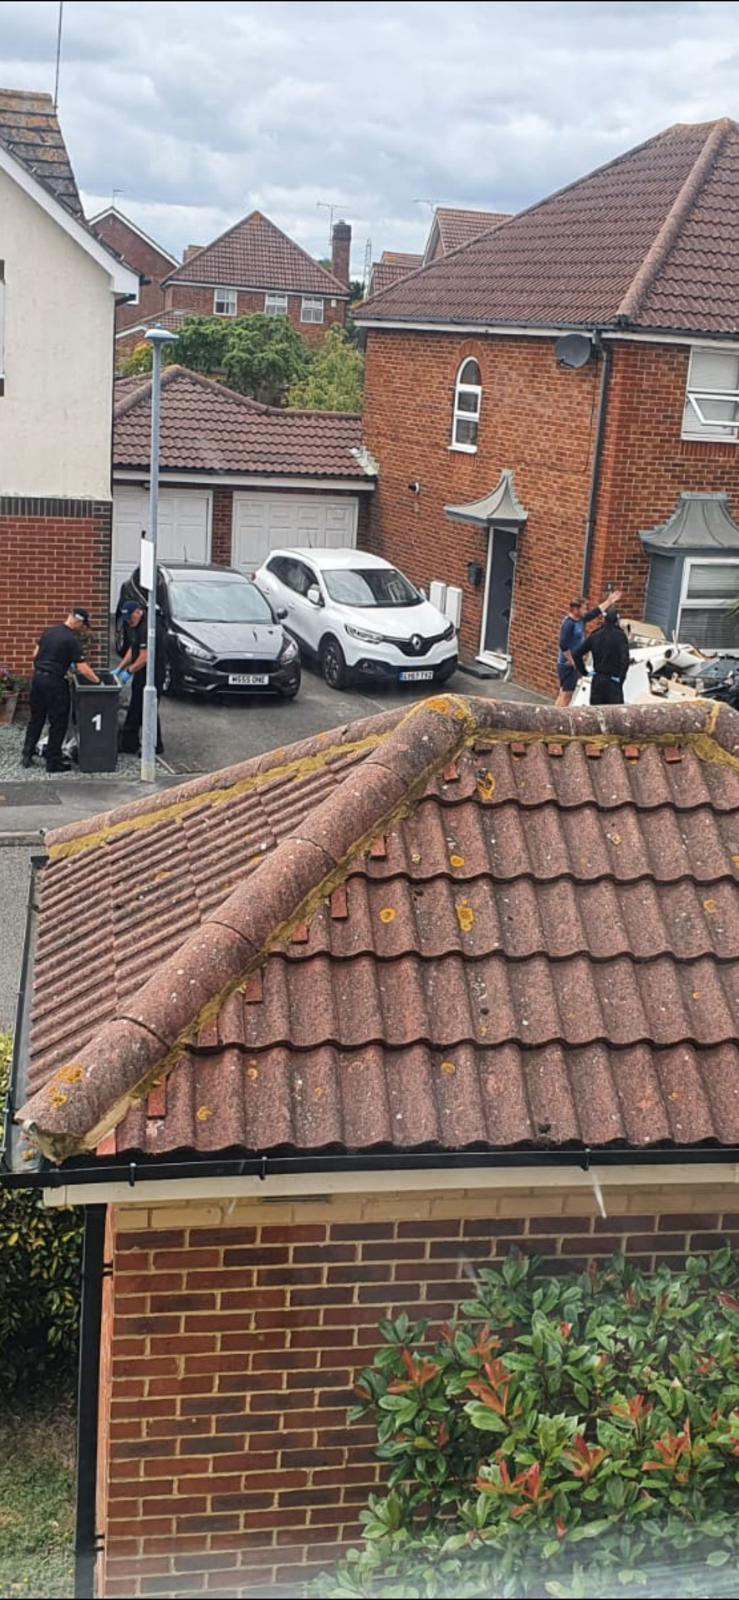 Man arrested on suspicion of murder following woman's death in Eastbourne